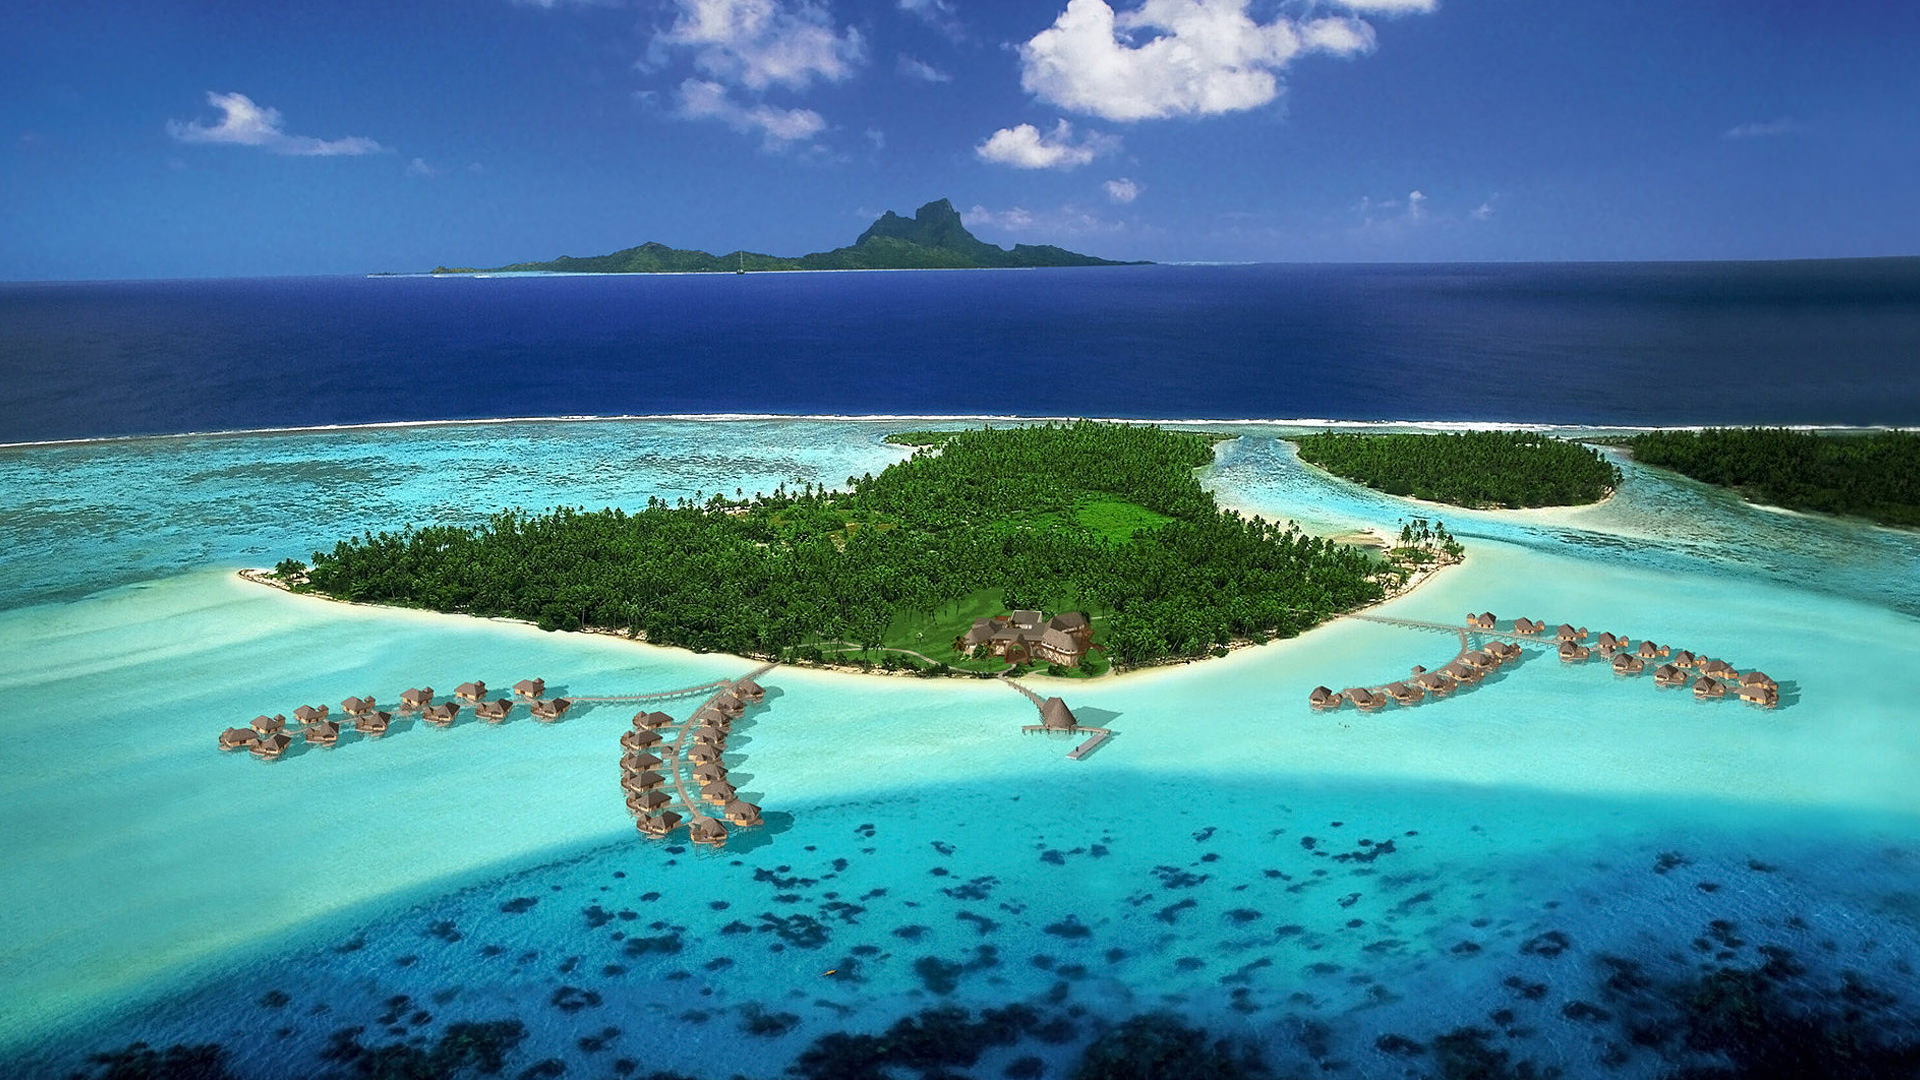 28 tropical beach backgrounds wallpapers images for Wallpaper for a